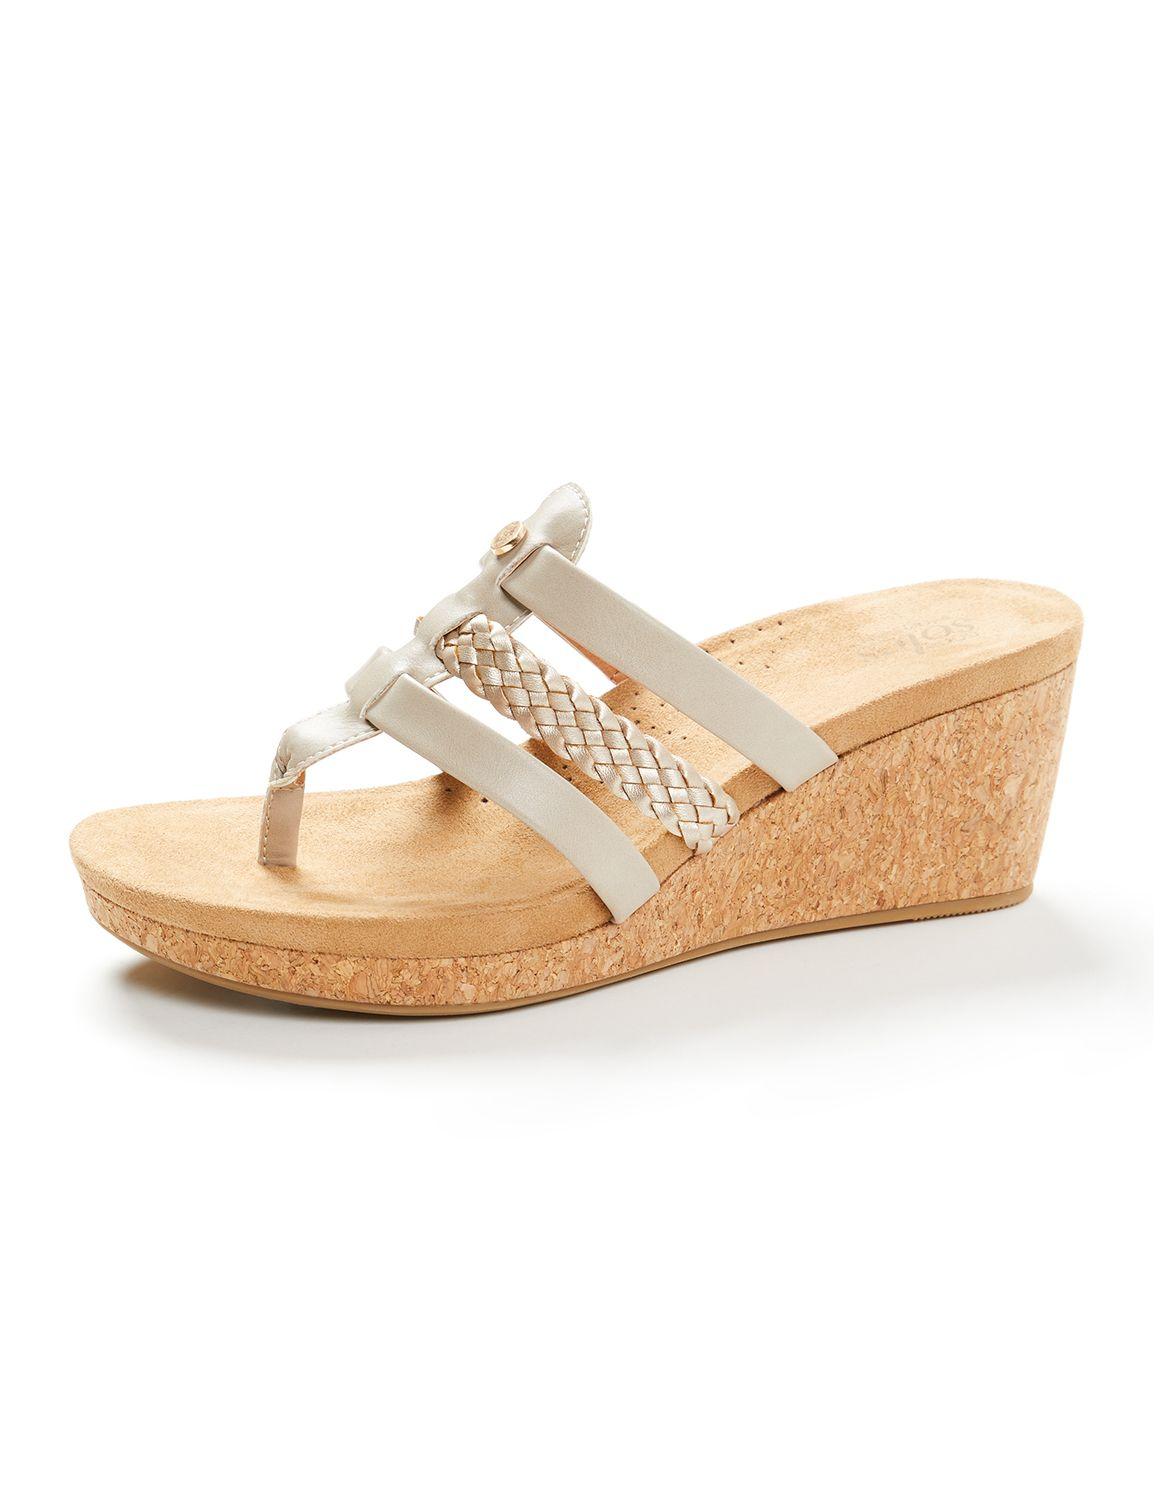 Good Soles Boardwalk Wedge Sandal Cork Wedge w/ Three Straps Wedge WL MP-300097415